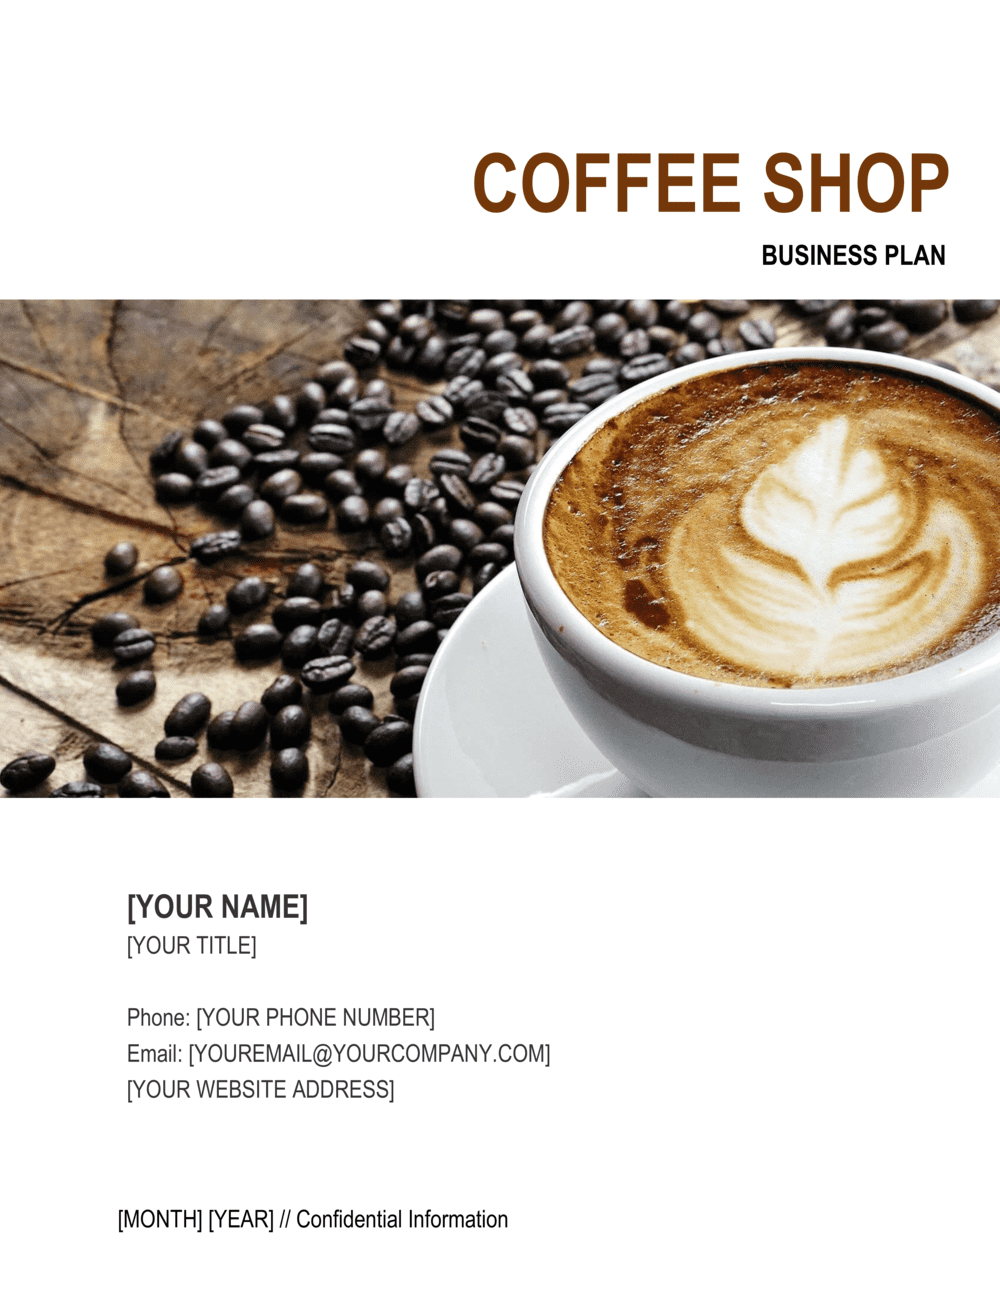 Business-in-a-Box's Coffee Shop Business Plan Template